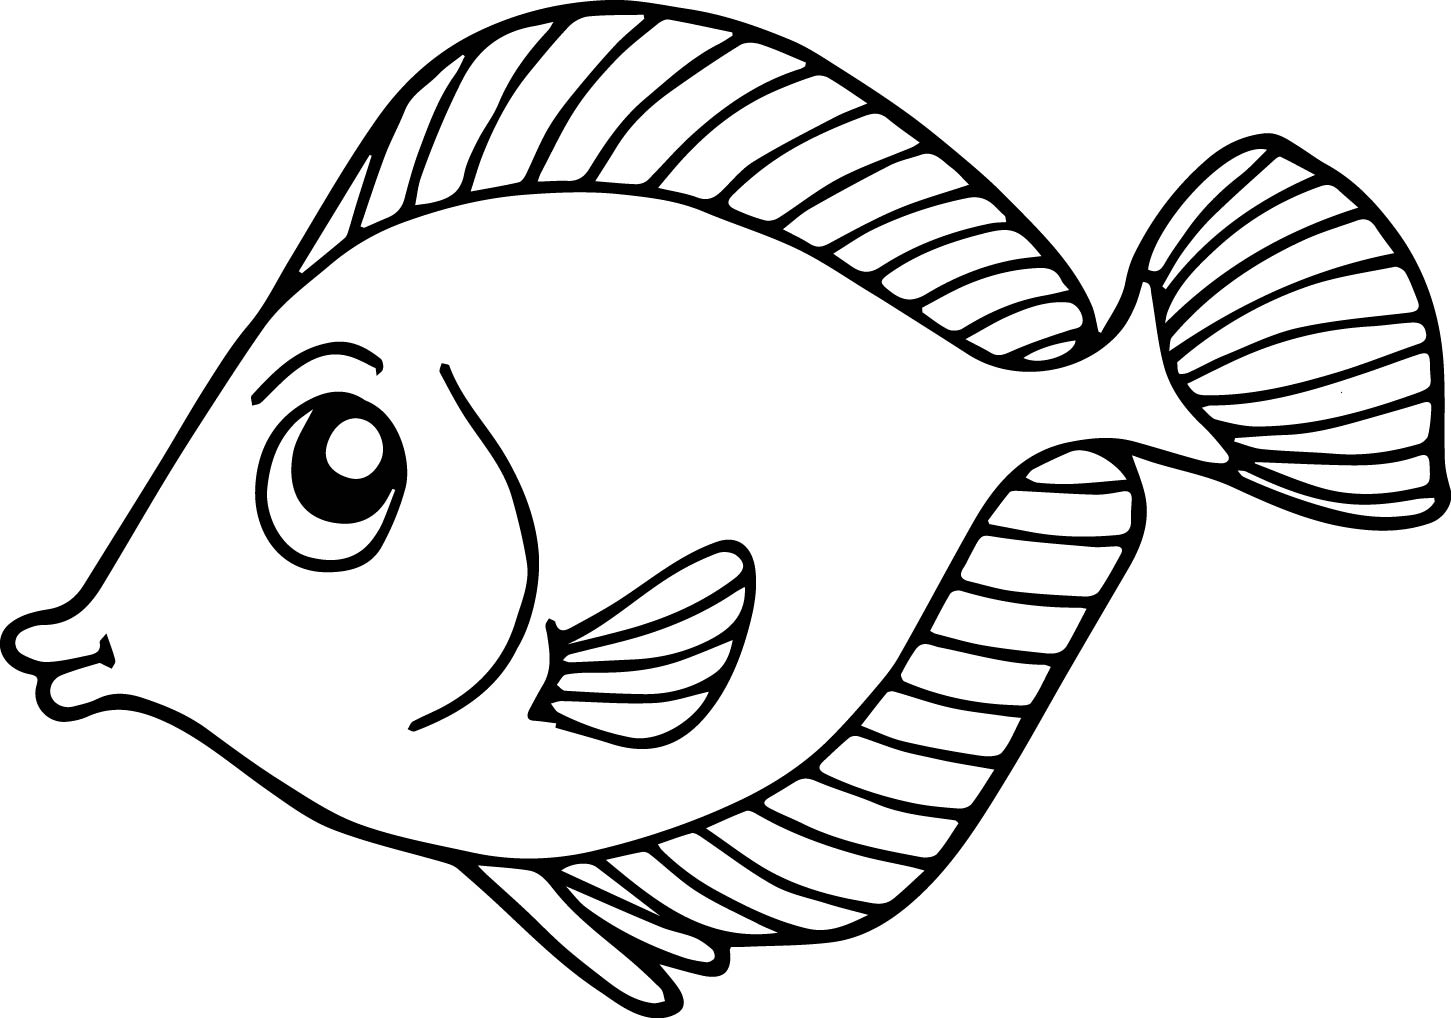 pictures of fish coloring pages print download cute and educative fish coloring pages coloring pictures of fish pages